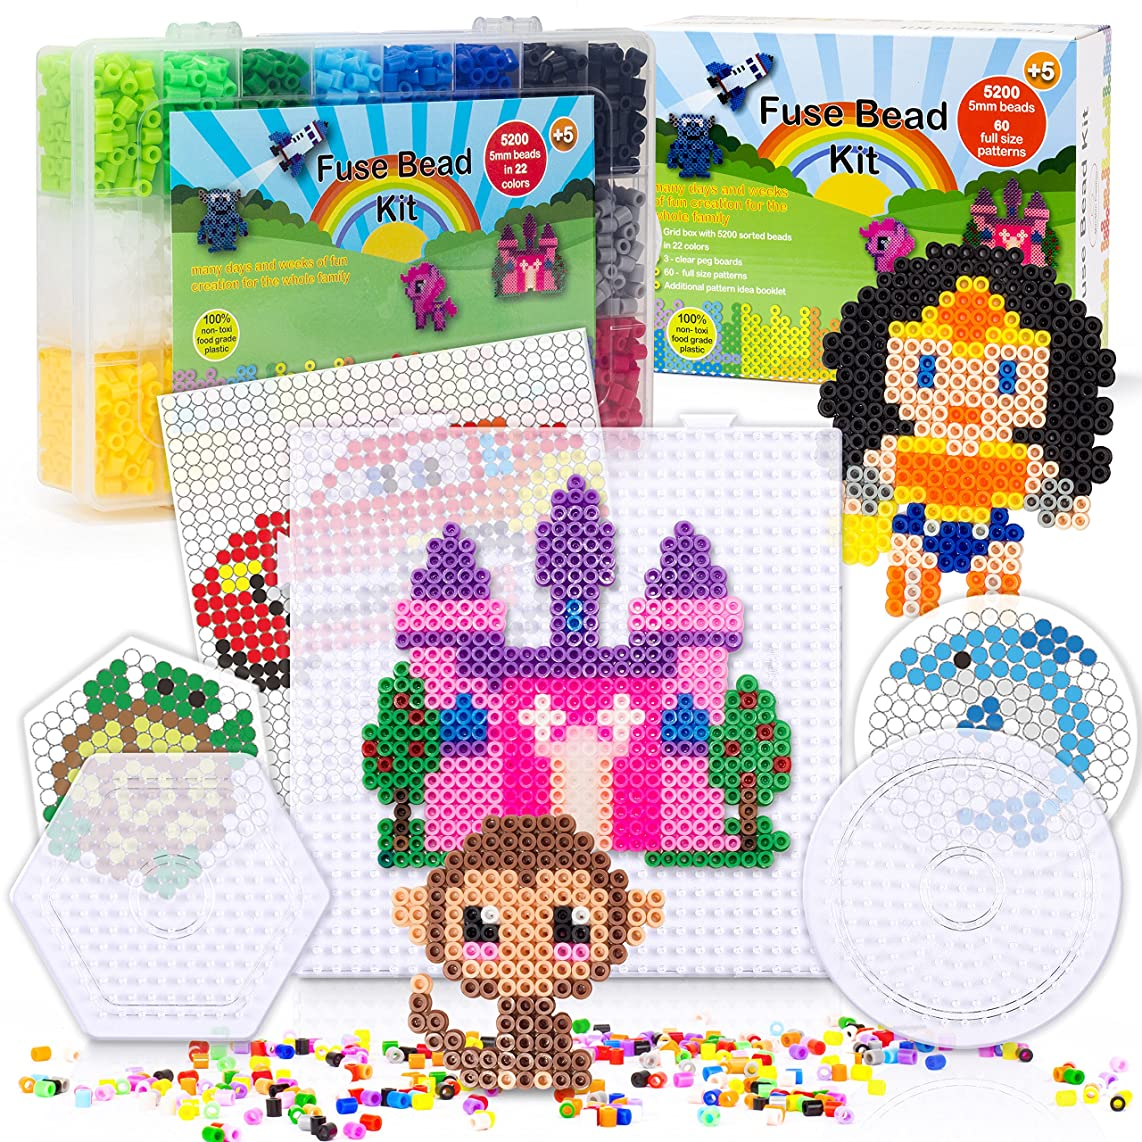 5200 Fuse Bead Set For Kids 5mm 22 Colors   60 Full Size Patterns 3 Pegboards Ironing Paper Storage Case Perler Beads Compatible Kit